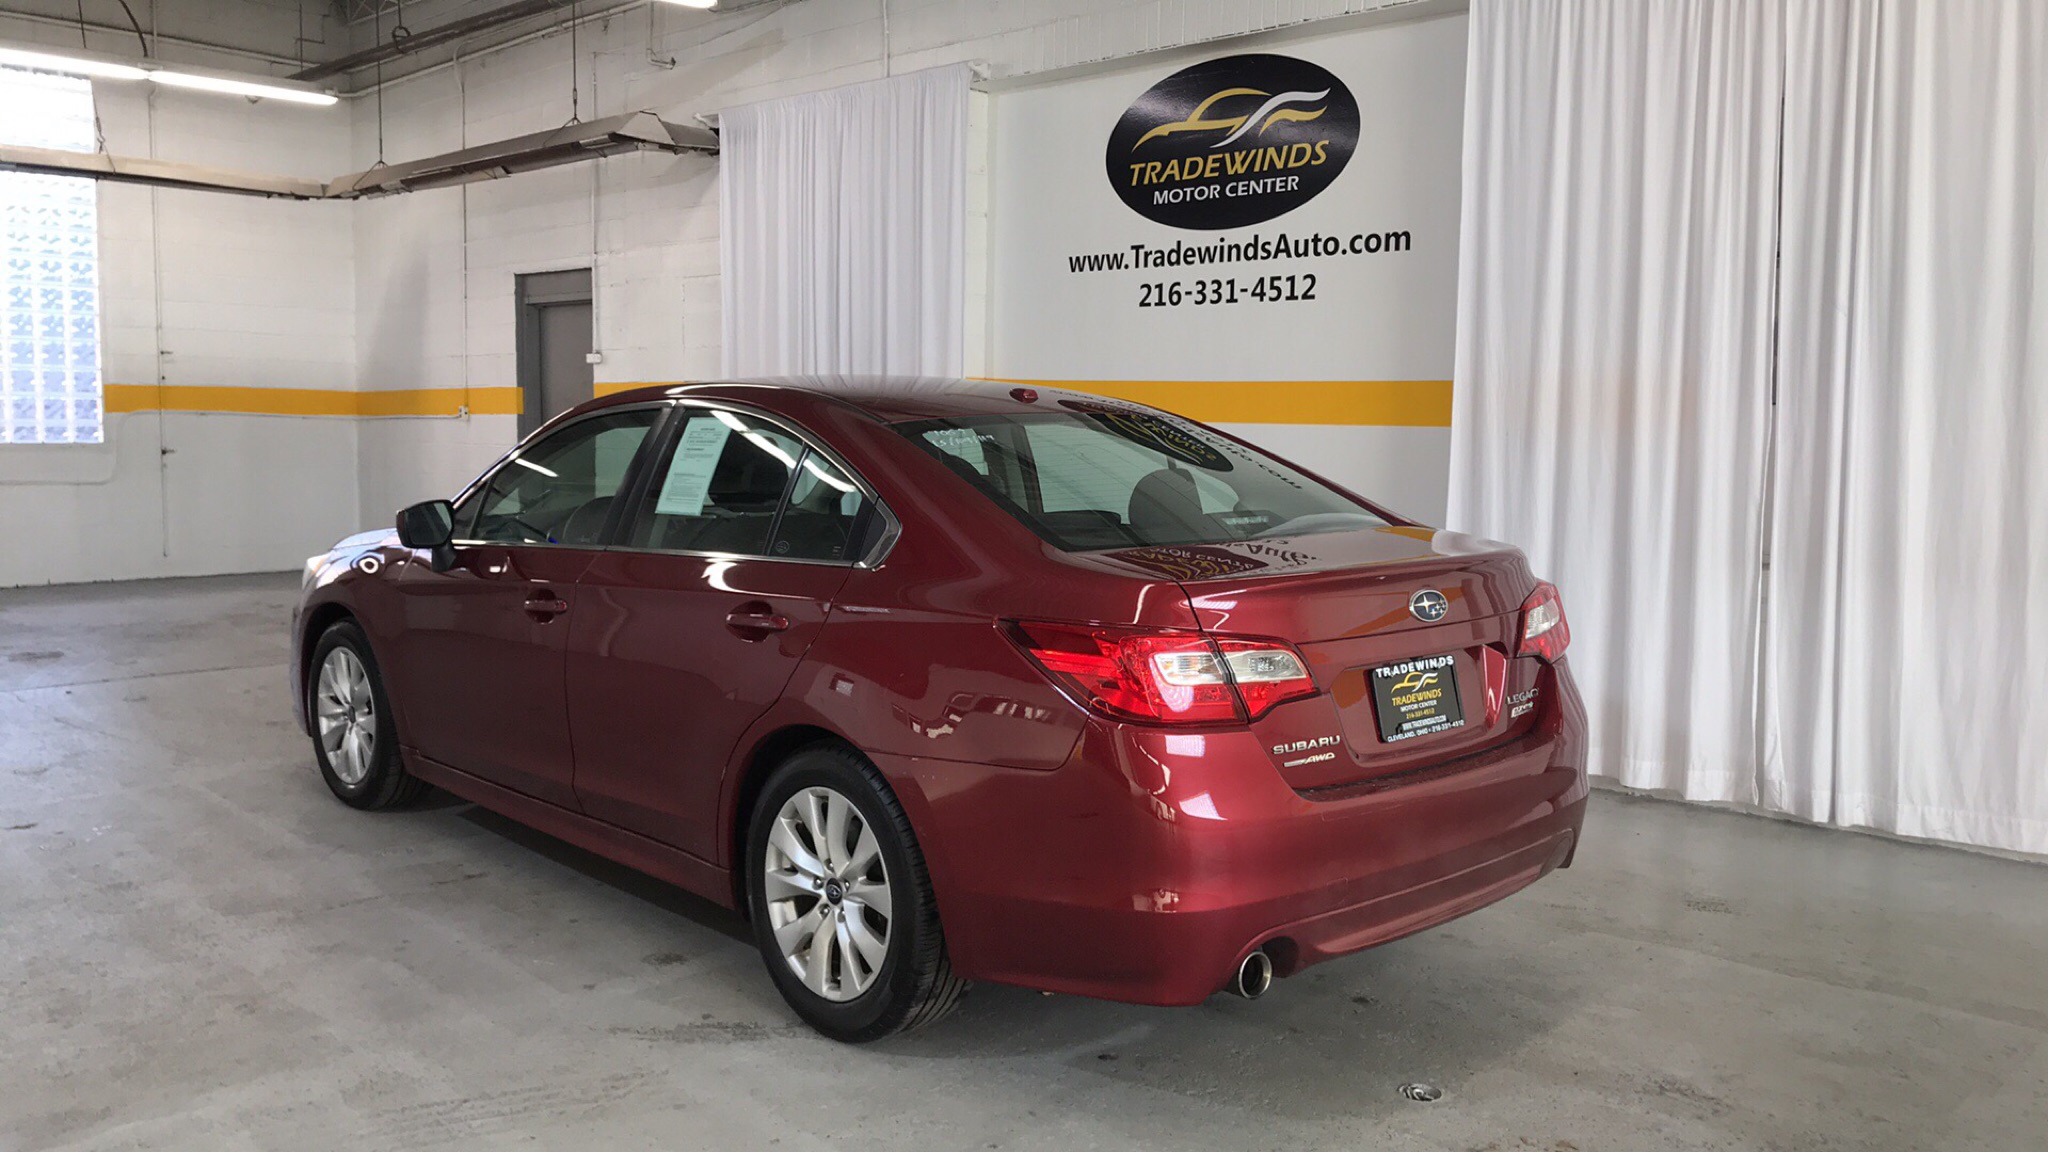 2015 SUBARU LEGACY 2.5I PREMIUM for sale at Tradewinds Motor Center